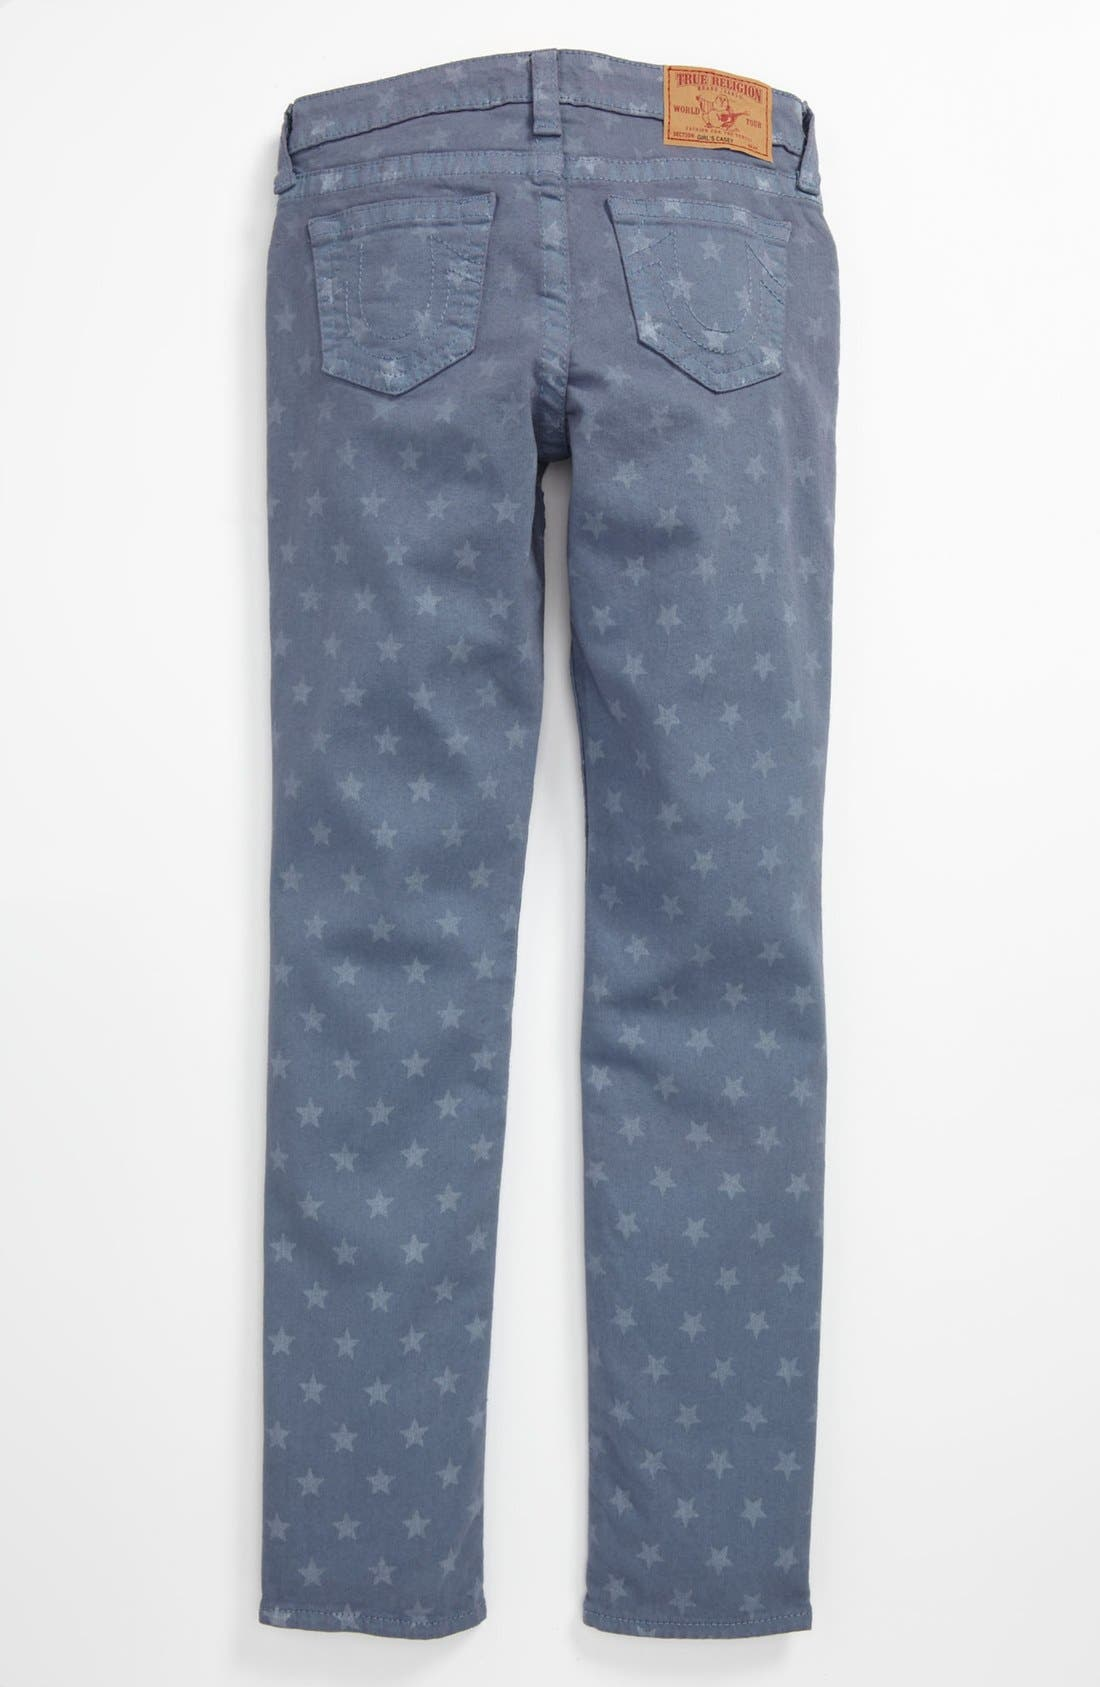 Alternate Image 1 Selected - True Religion Brand Jeans Skinny Leg Jeans (Big Girls)